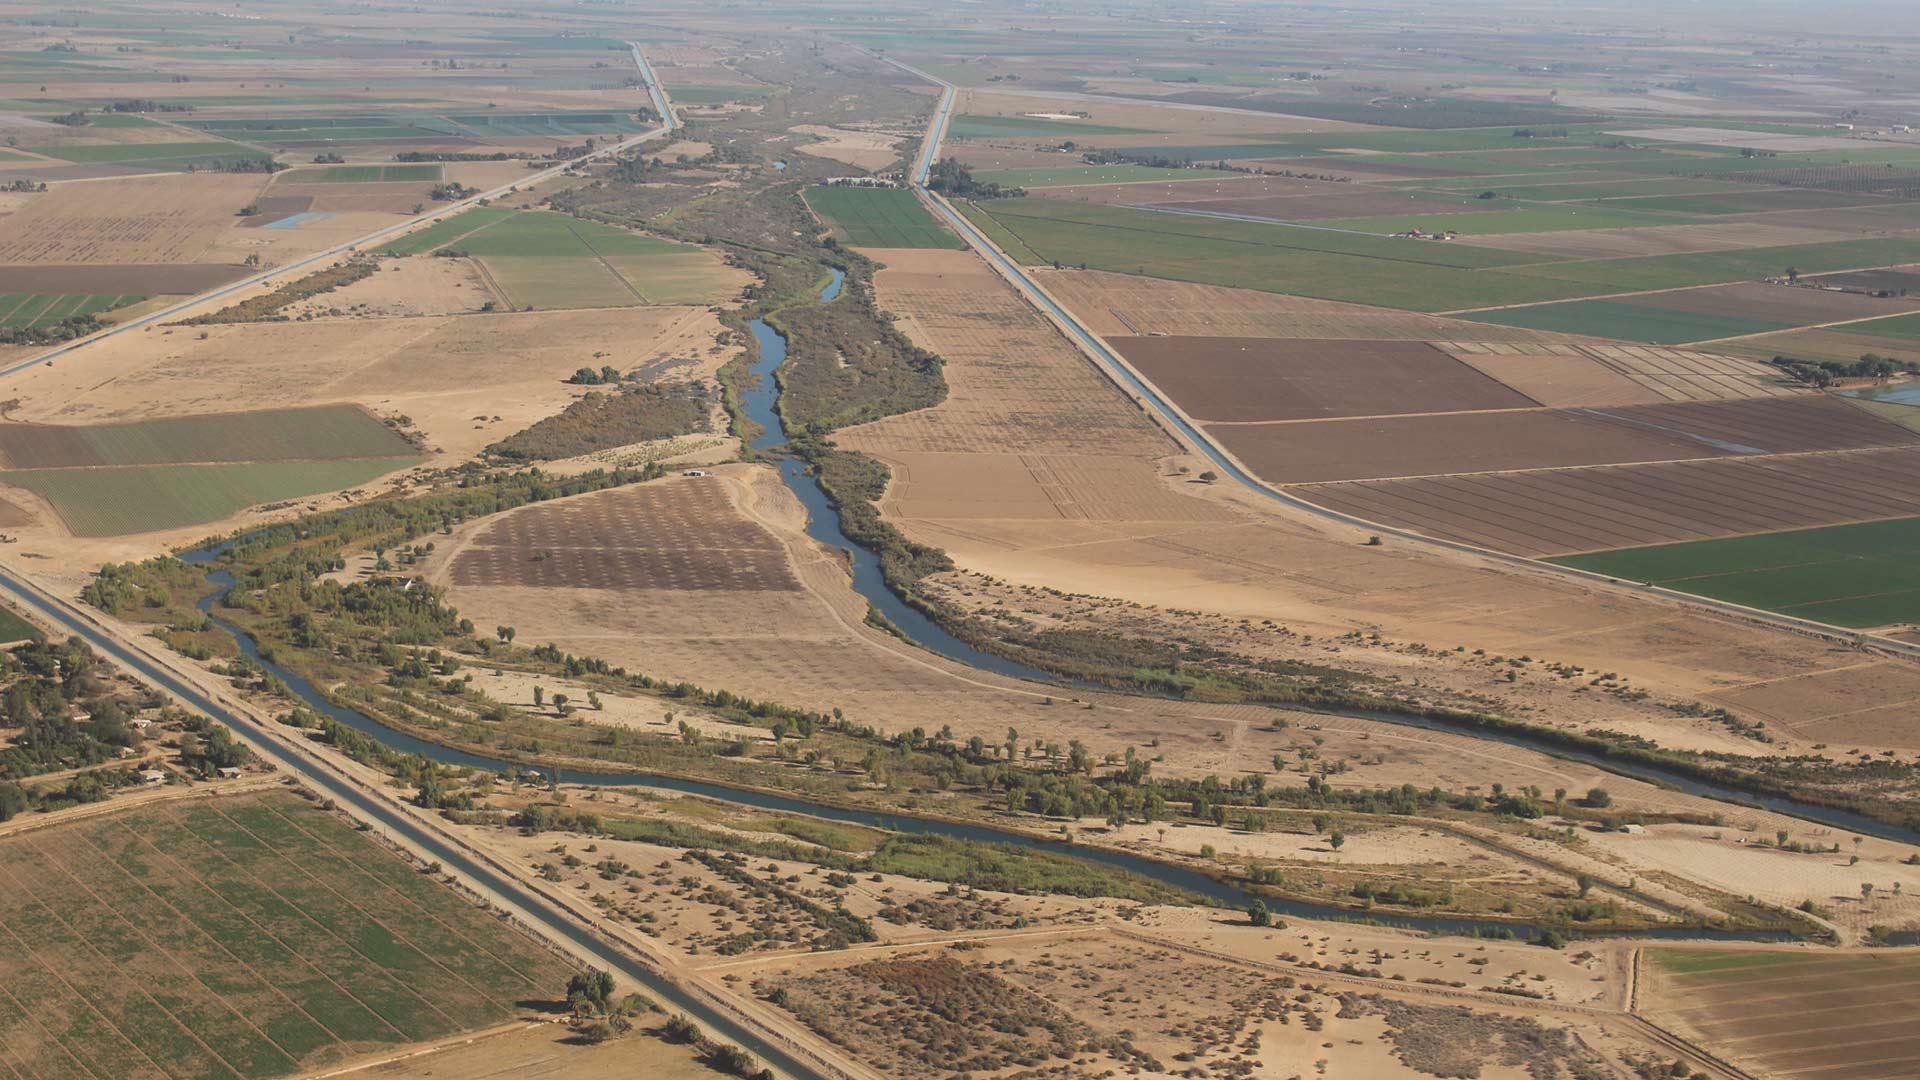 Bordered by irrigation canals, restoration site Chausse is meant to replicate a bend in the Colorado River, with marshy areas and native vegetation.